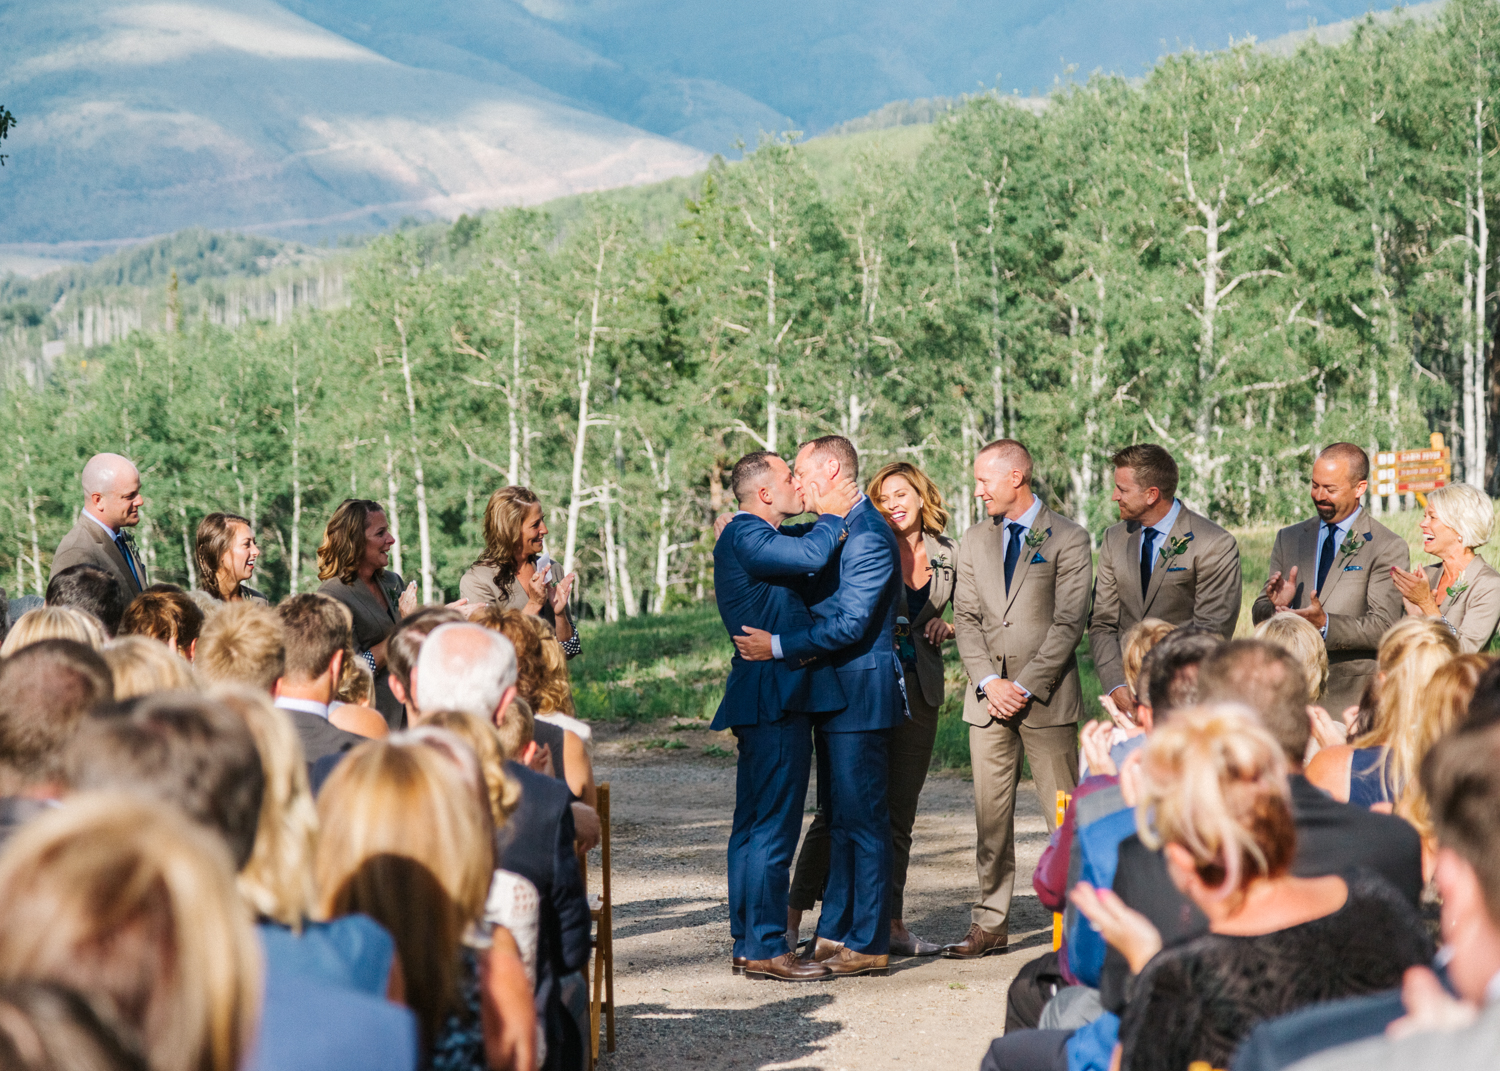 Zach's Cabin Destination Wedding by Cat Mayer Studio